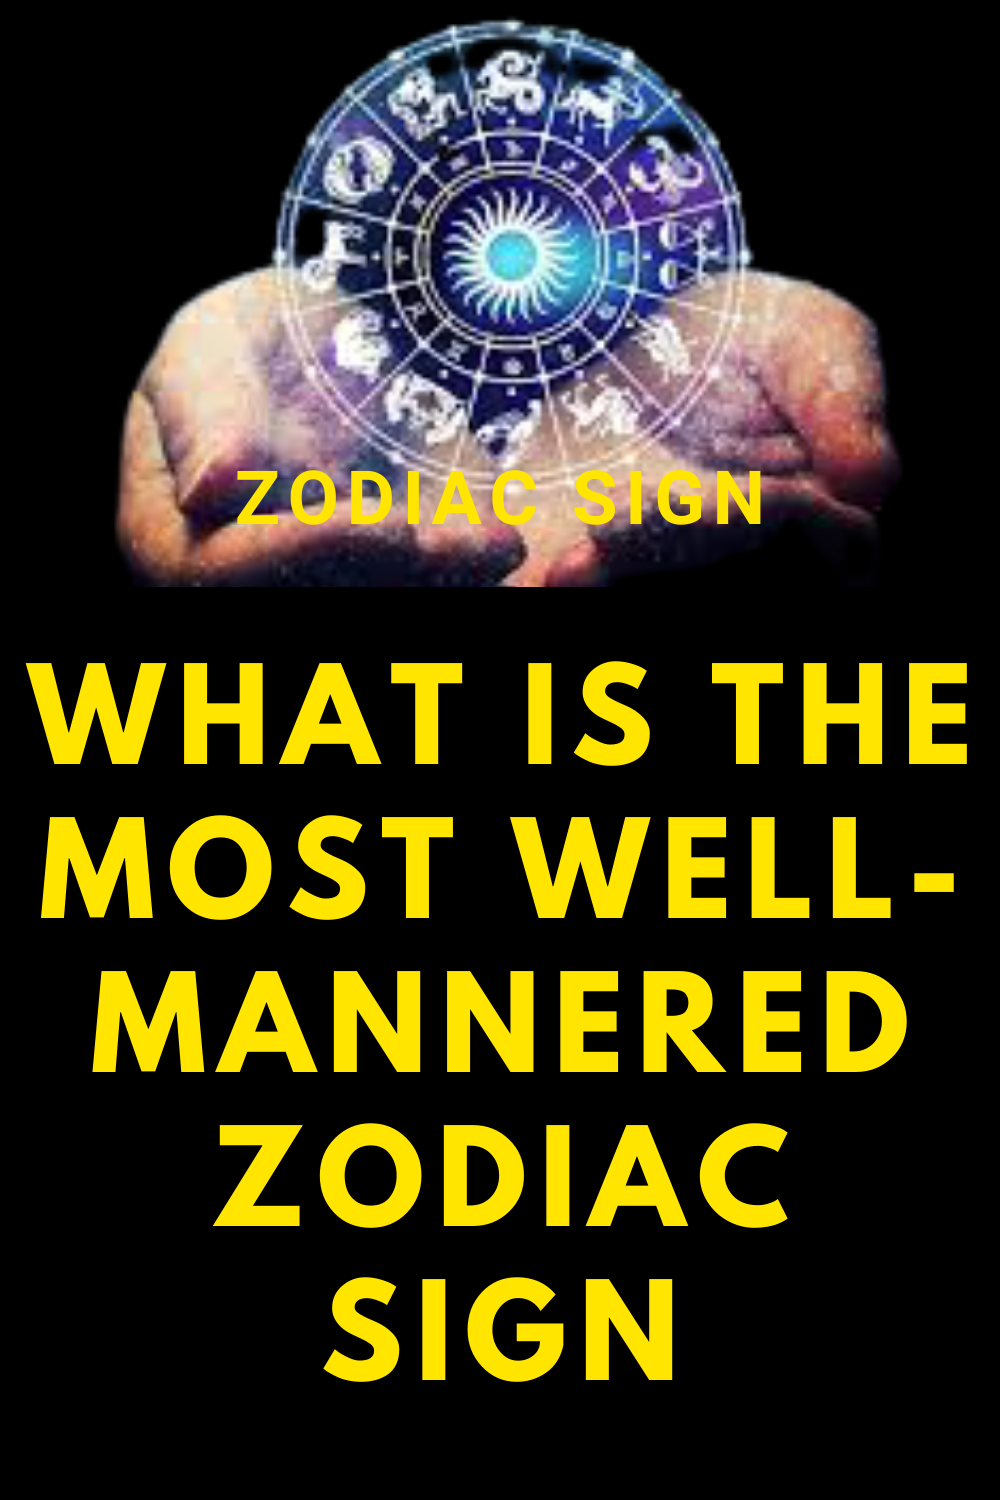 What is the most well-mannered zodiac sign